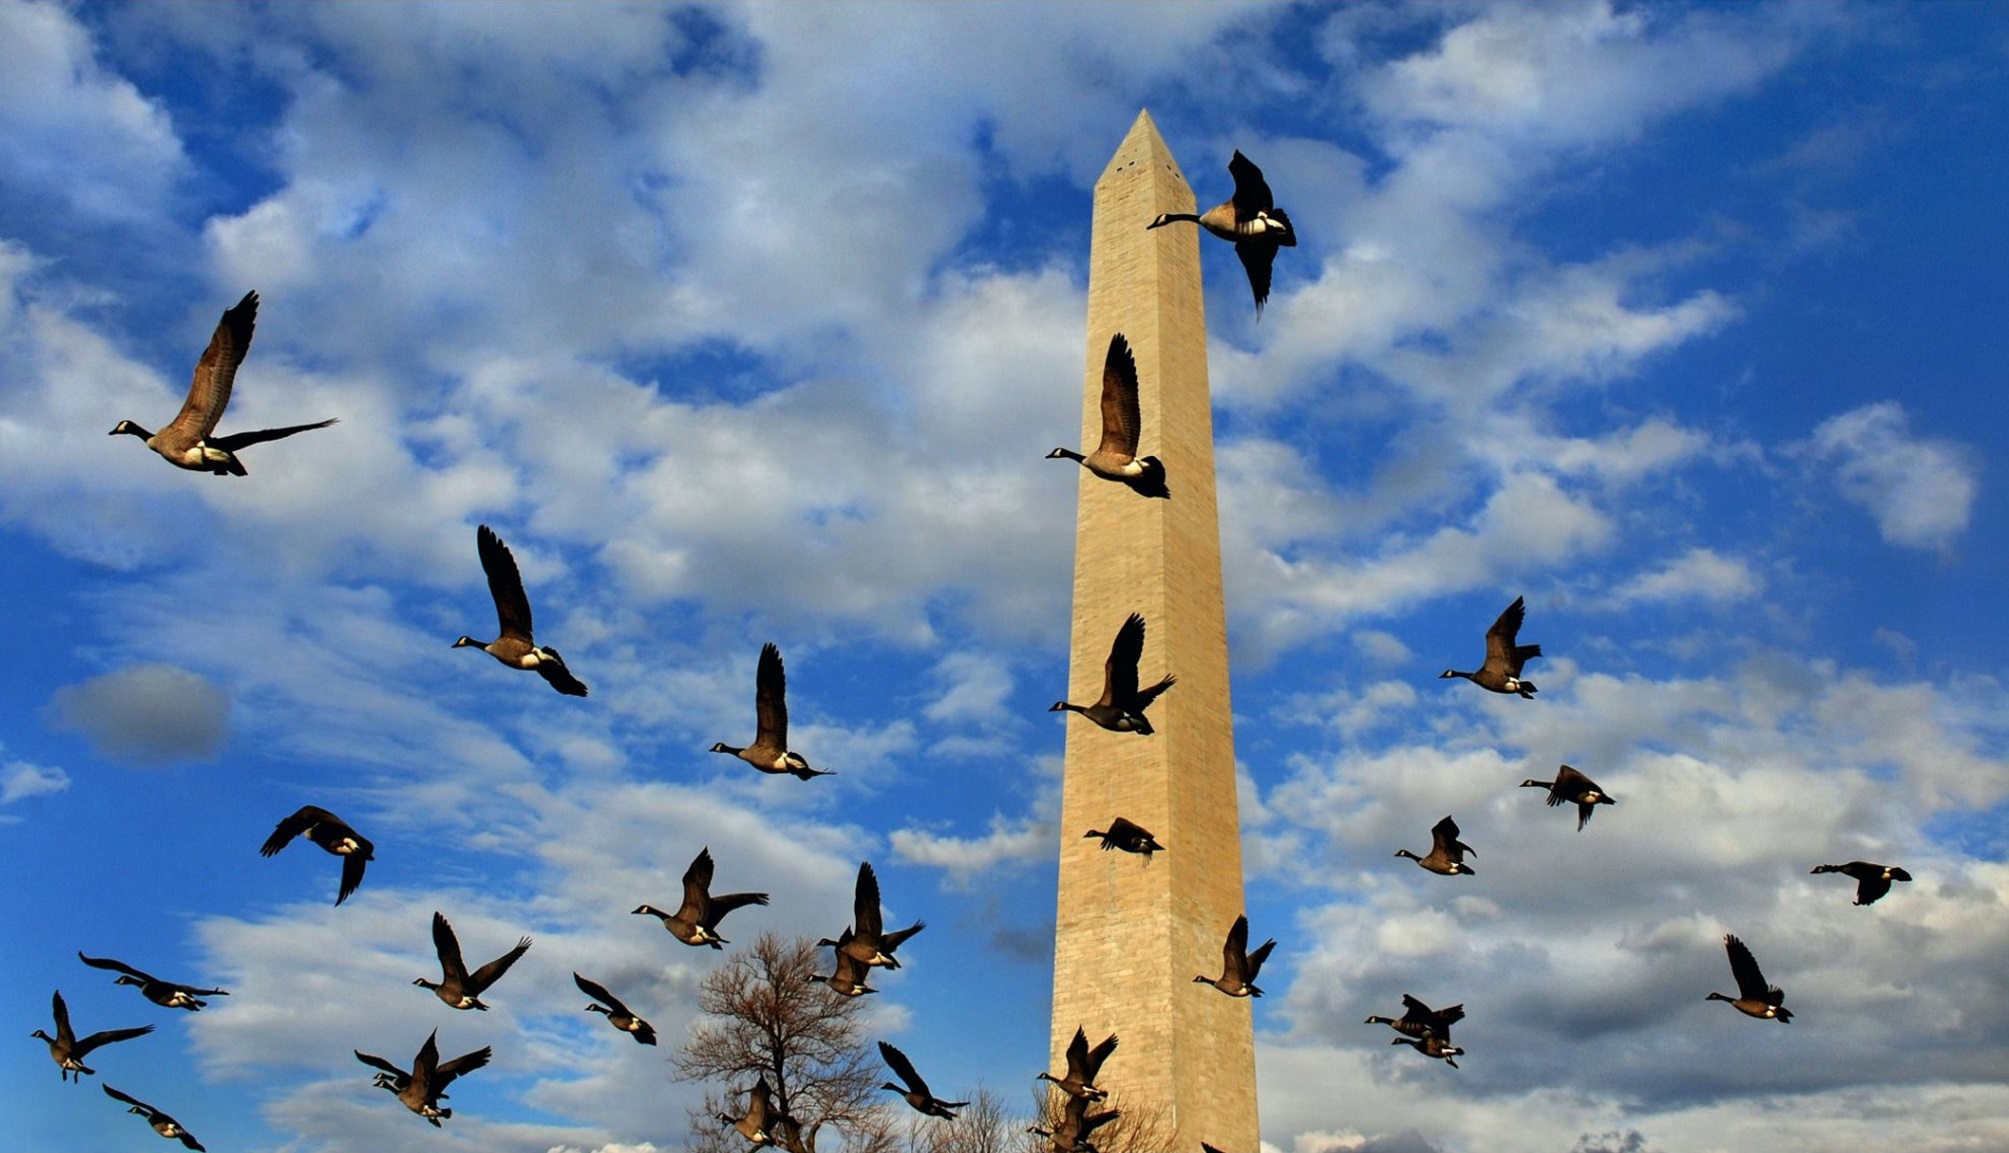 Made a photo of the Washington Monument for a President's Day story that ran today. It was so dang cold but the light is clean and crisp when it's really cold. I had a nice angle in mind but it needed something more. So I bribed several birds with some birdseed (wink) if they would agree to help me out. After training them and explaining where I wanted them to fly, they flew into the frame and helped make the composition better. Normally I would just wait in the cold and hope to get lucky but hiring stunt birds seemed more like what a real pro would do. Besides..my fingers were frozen so I had to wing it! © 2015 Michael S. Williamson/The Washington Post